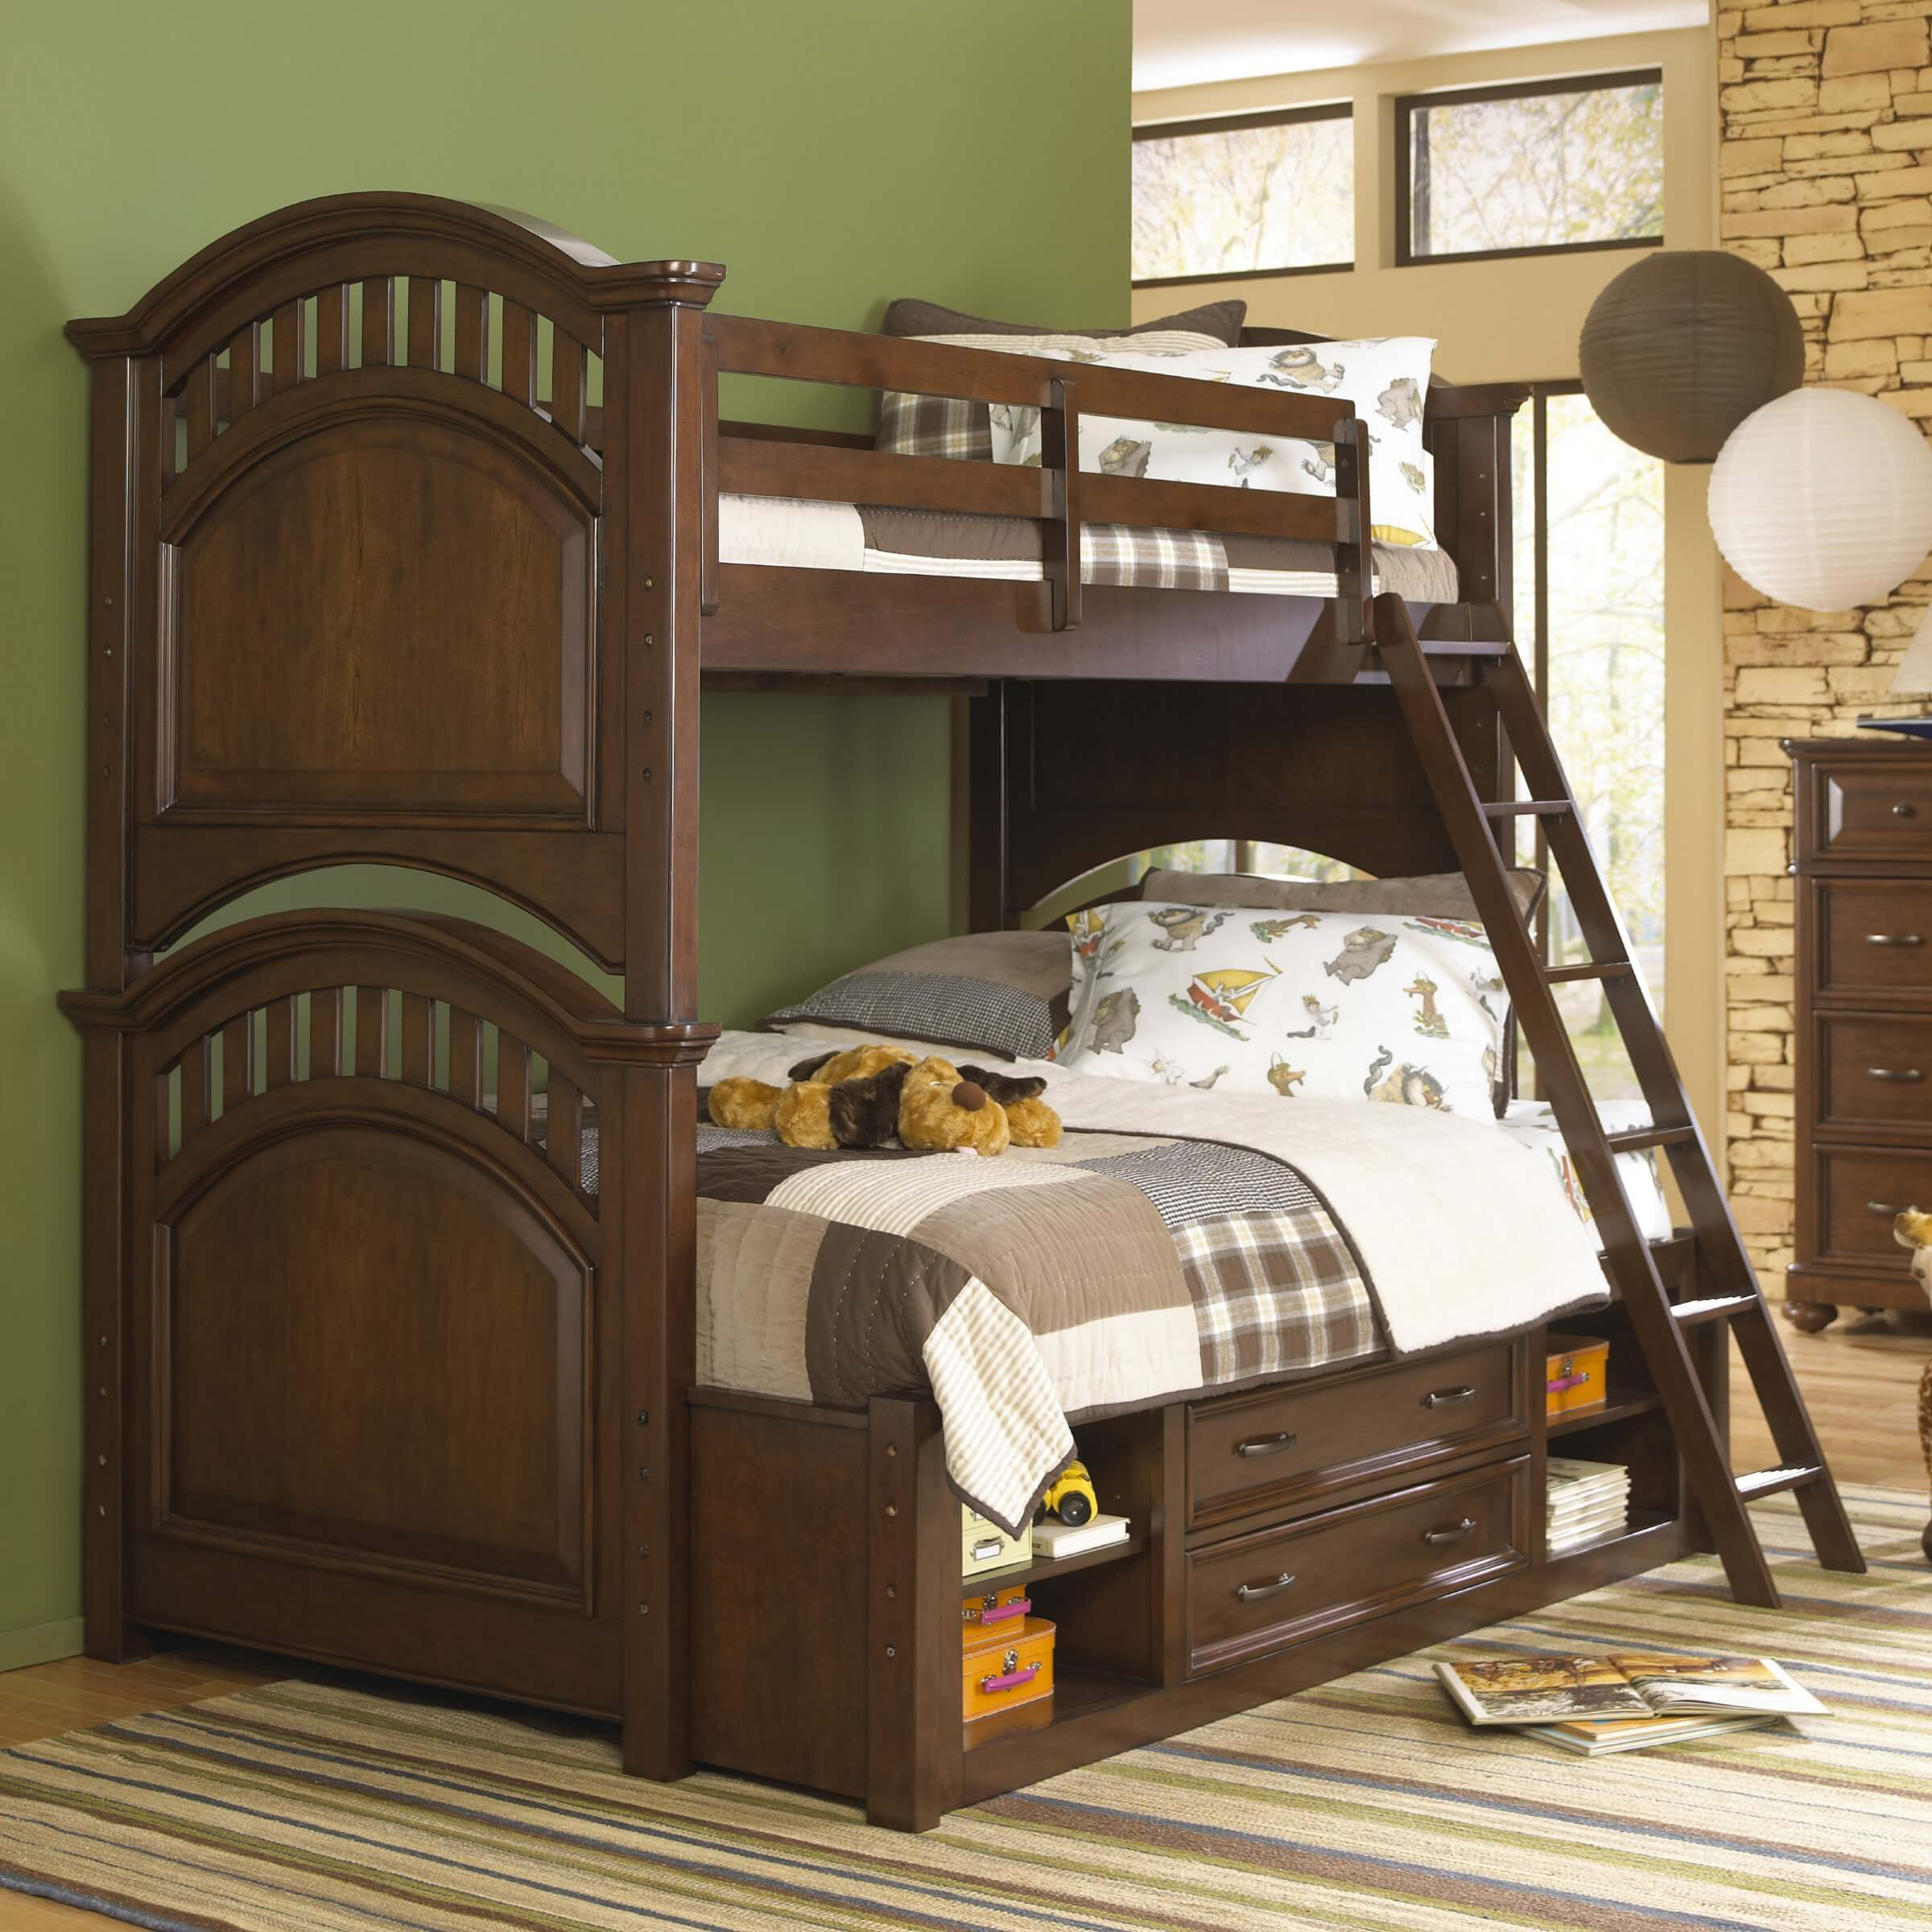 Dark pine twin over twin bunk bed bunk beds - Cherry Wood Twin Over Full Bunk Bed